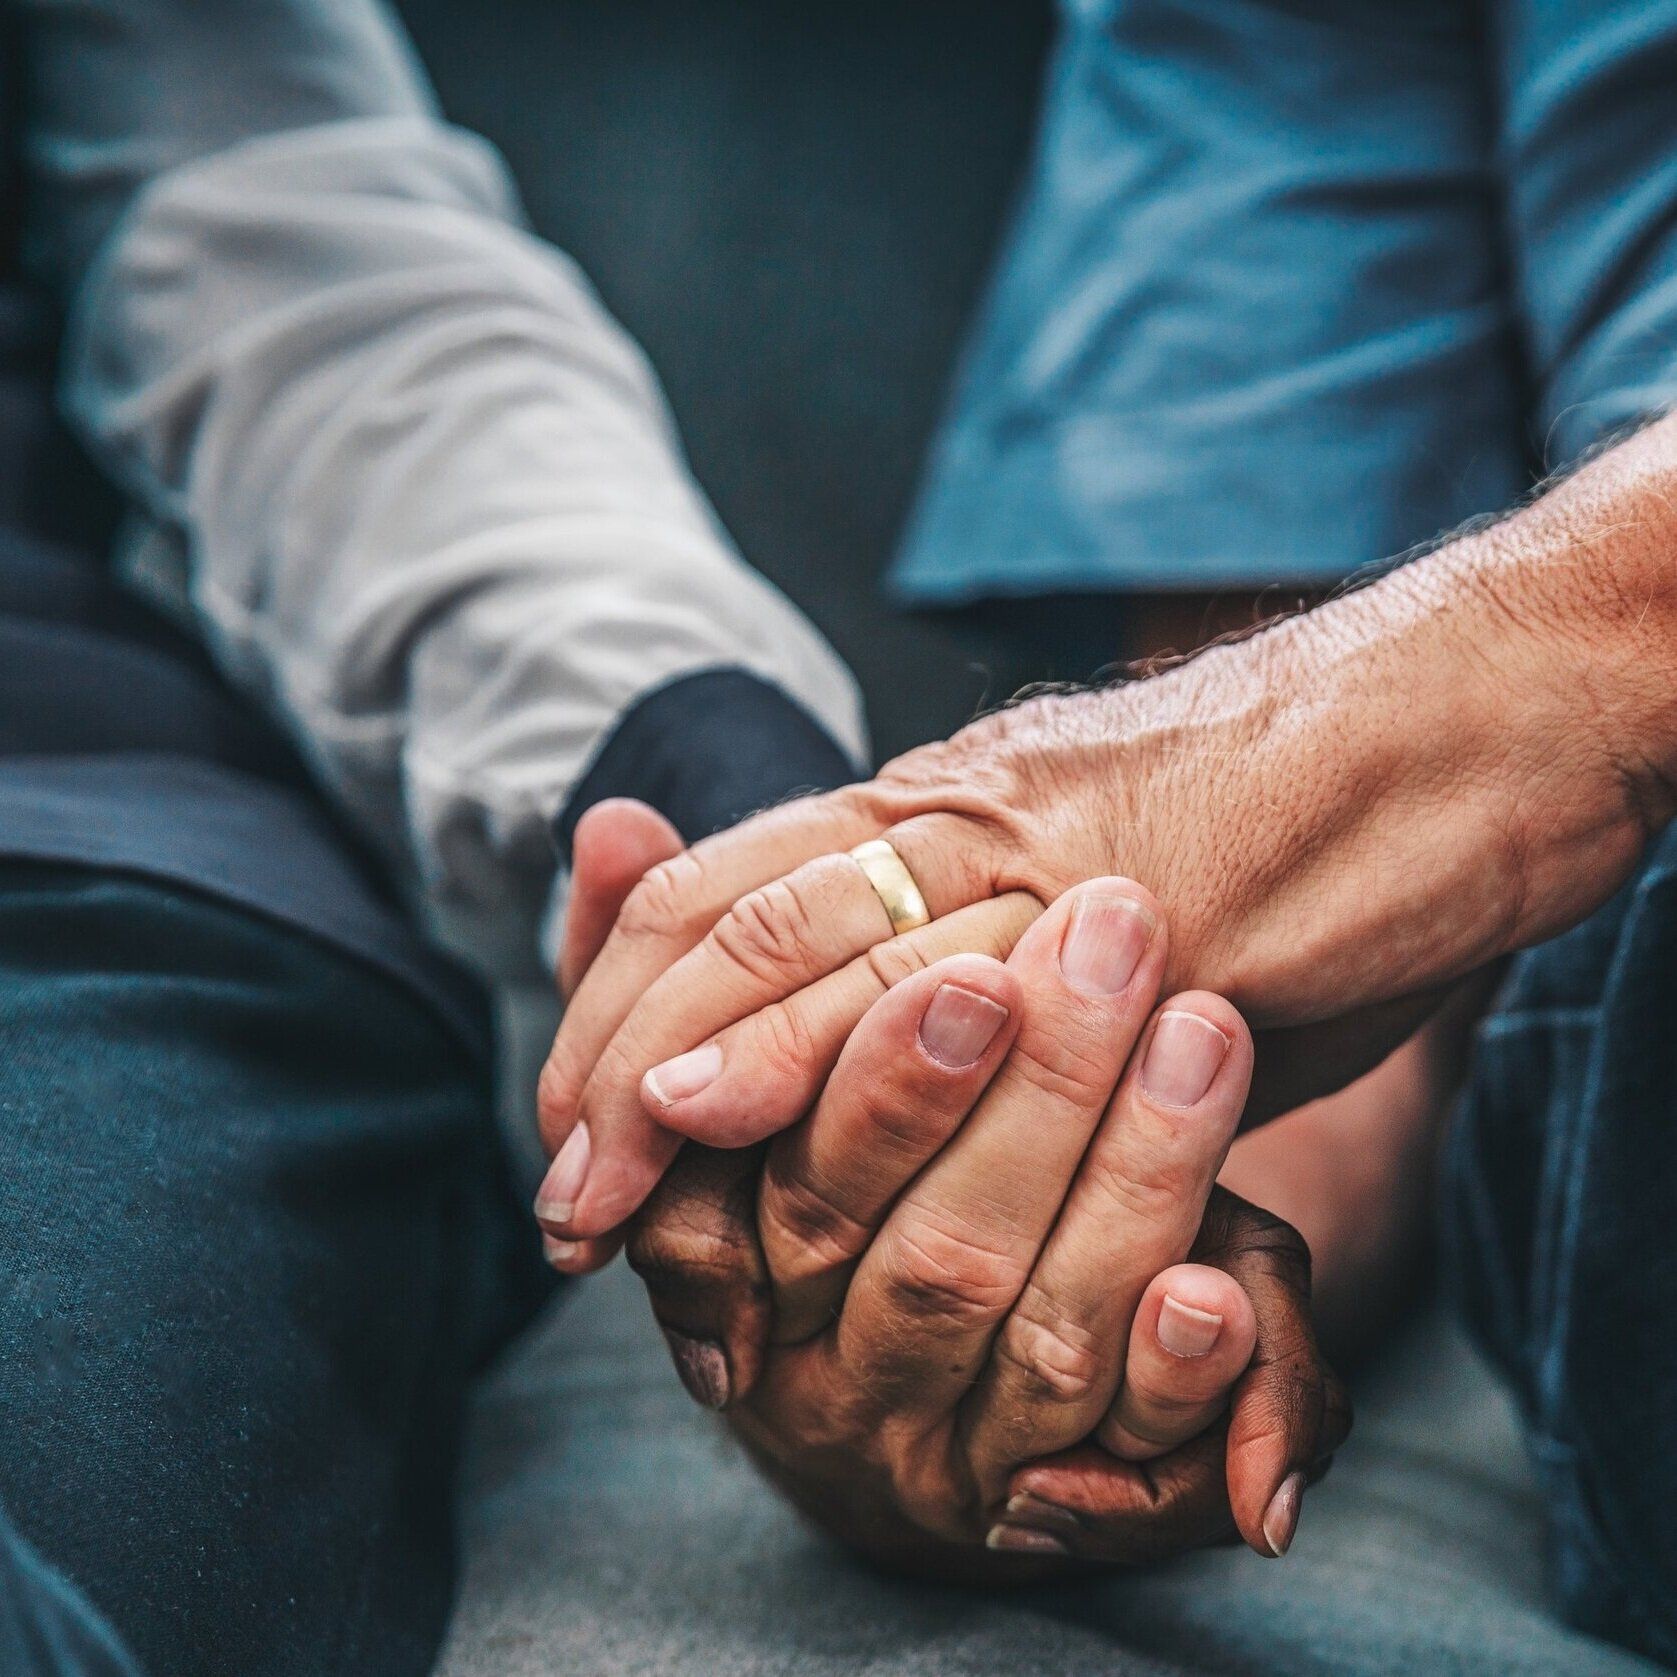 Safeguarding - We have created two safeguarding modules on modern slavery and human trafficking. They approach the issue from the angle of Church of England safeguarding and are available from the Church's online portal.